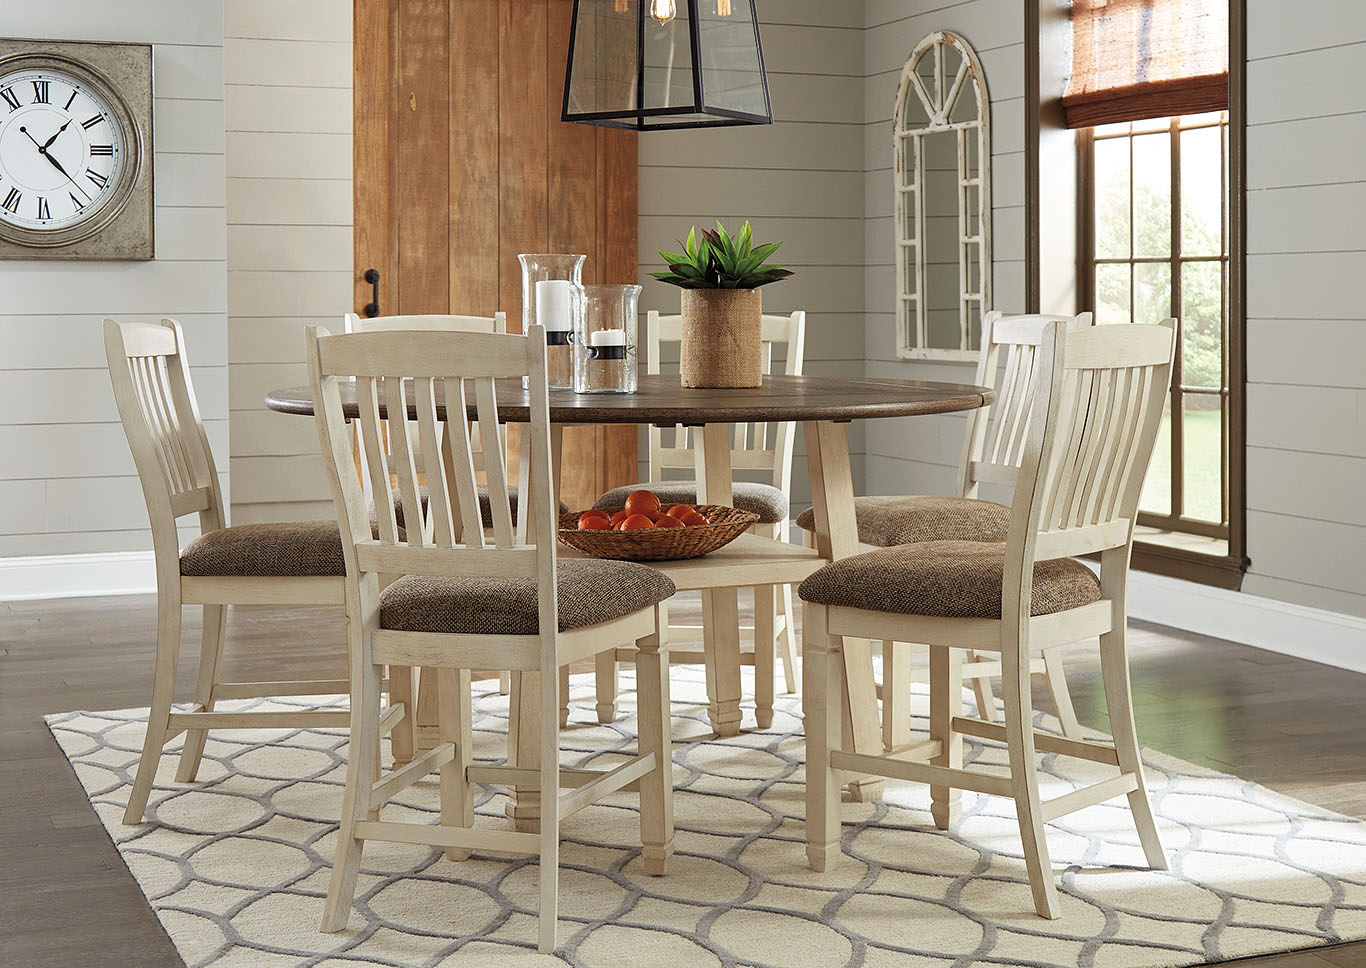 Bolanburg Antique White Round Drop Leaf Counter Table w/6 Upholstered Barstools,Signature Design By Ashley